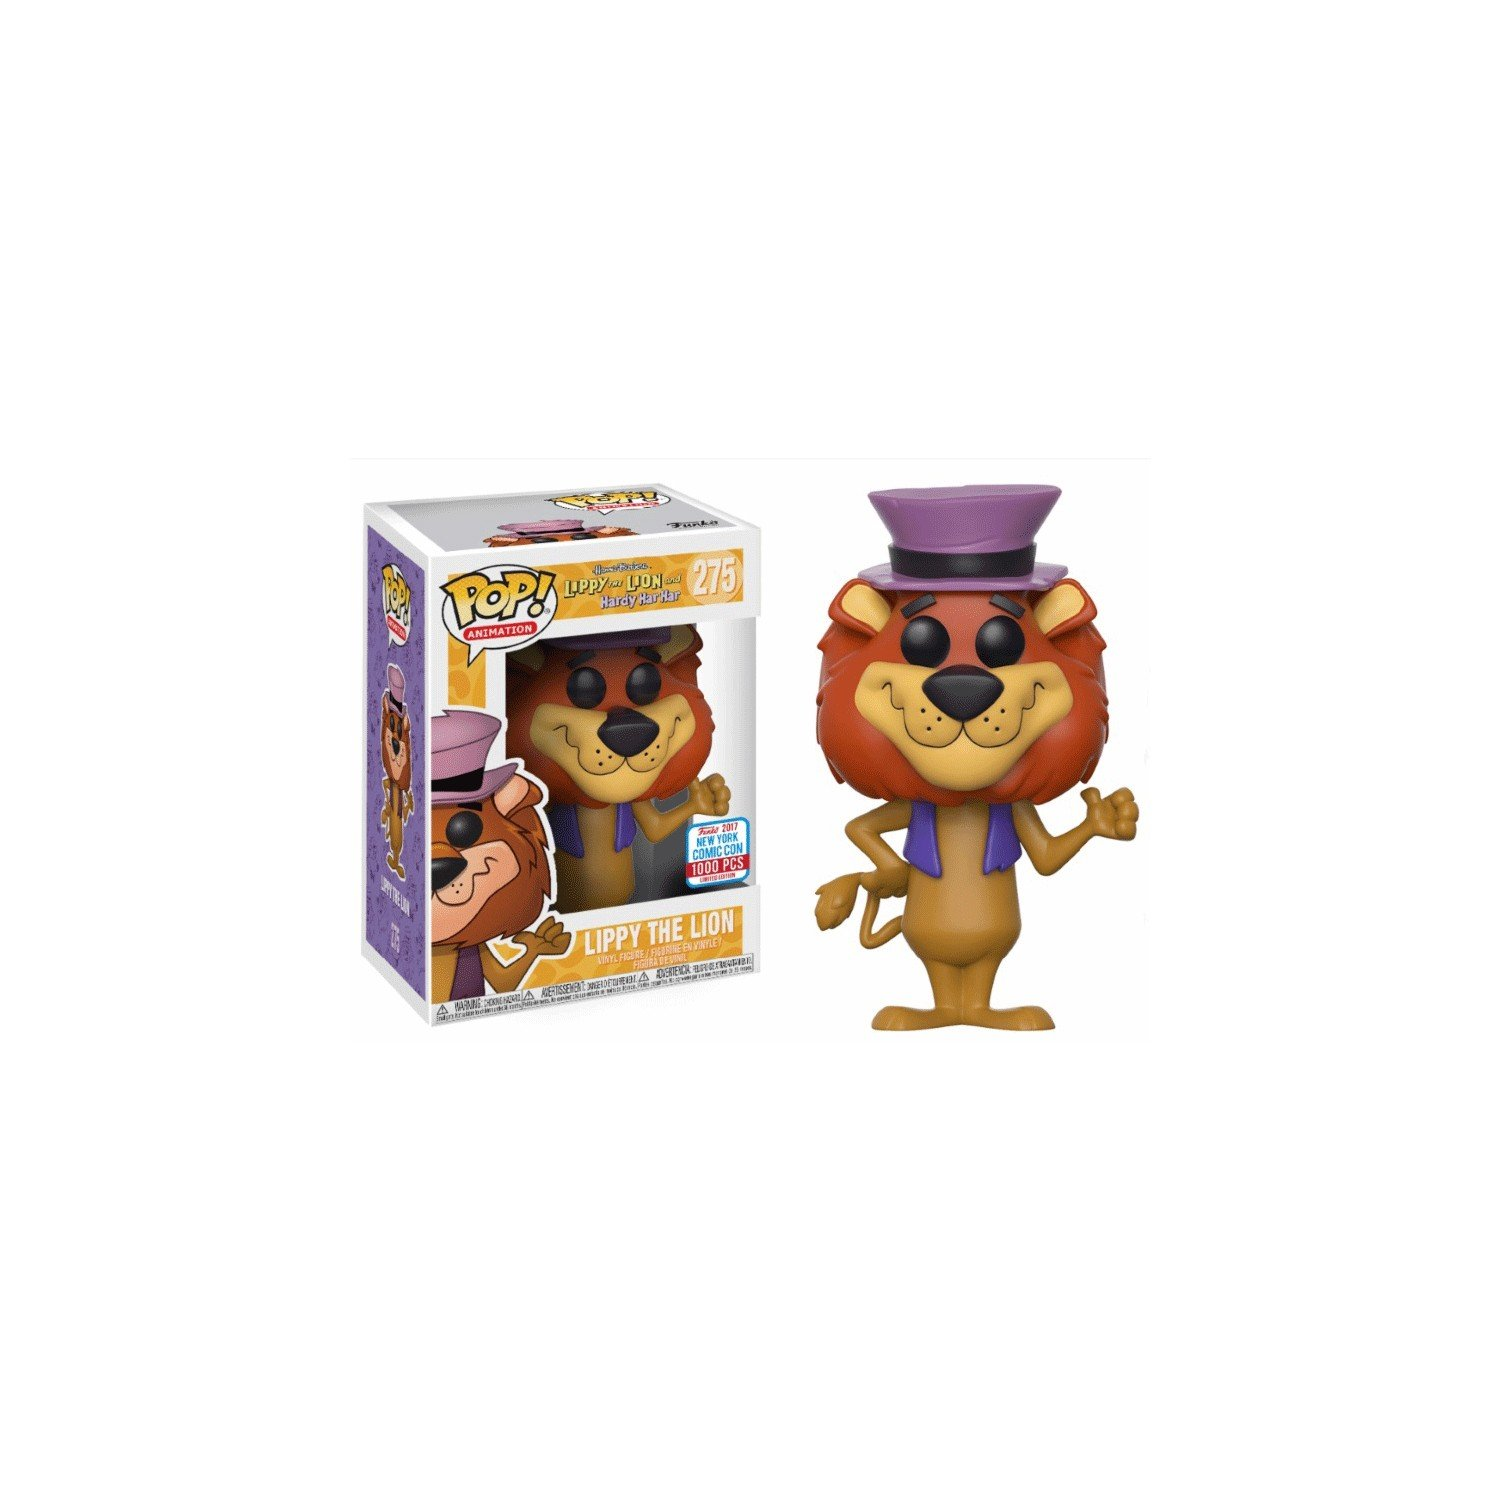 FunKo - Figurine Hanna Barbera - Lippy The Lion Exclu Pop 10cm - 0889698136570